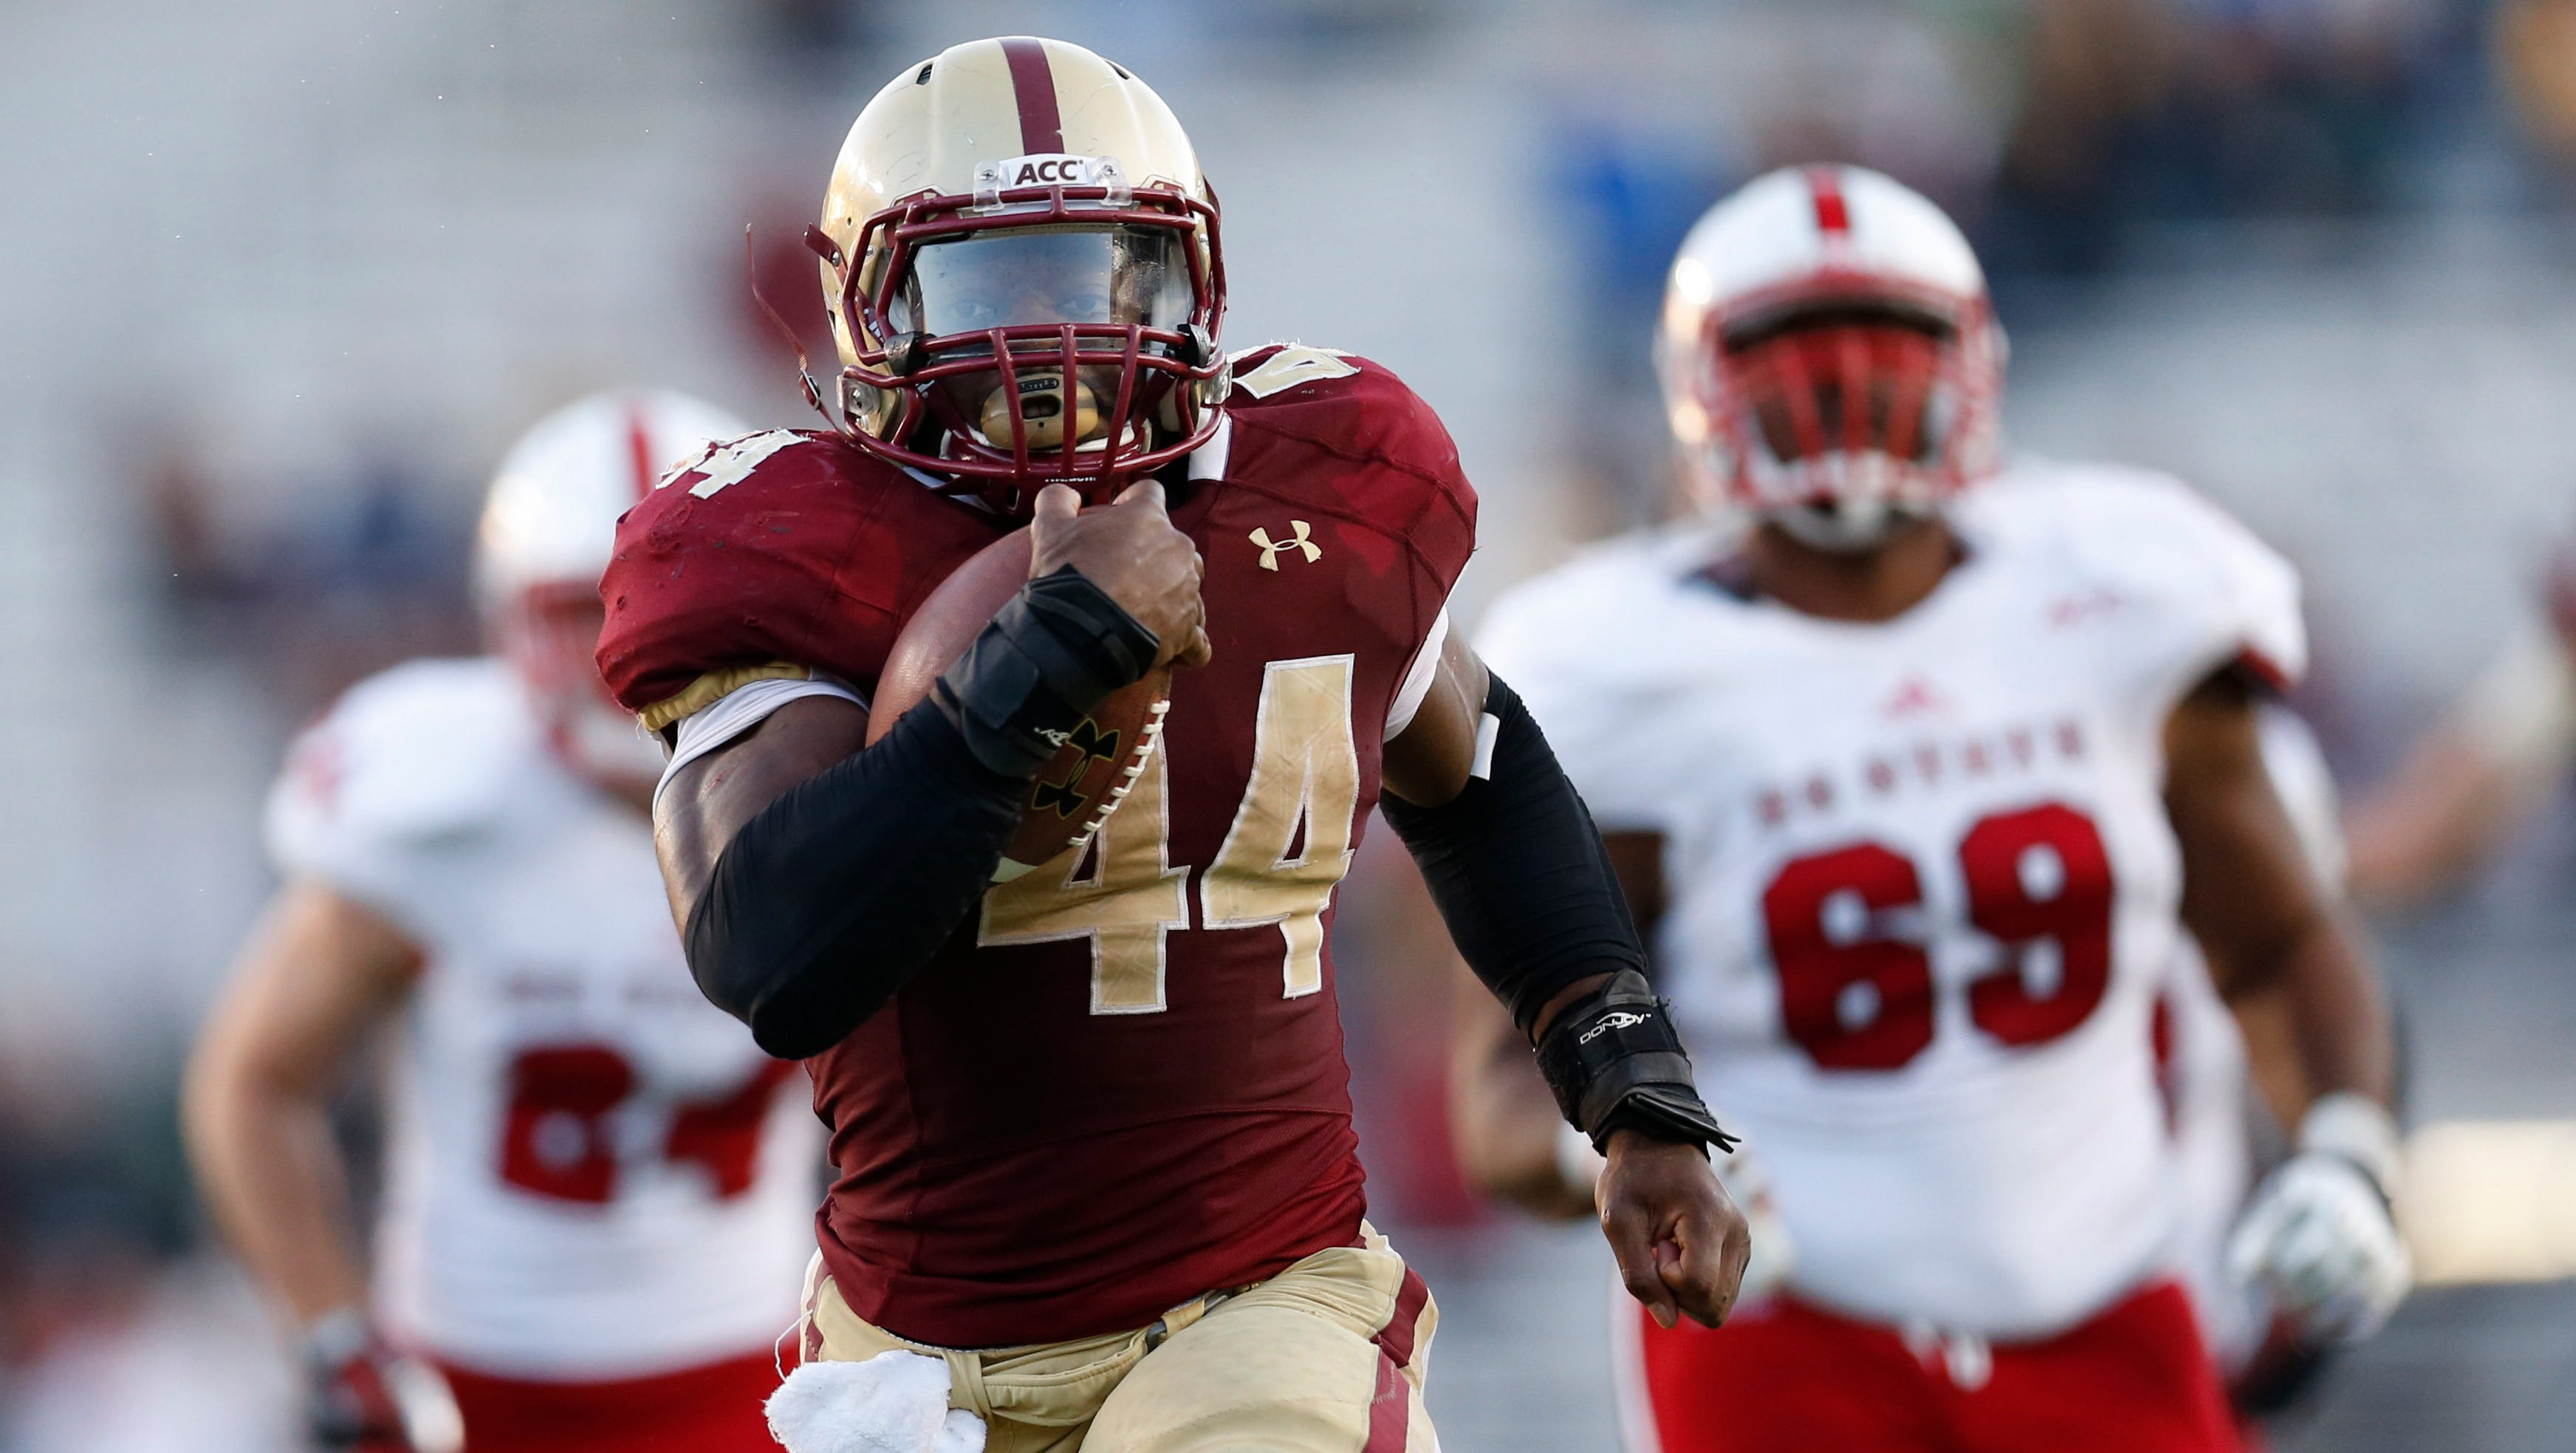 Boston College's Andre Williams: From own book to record book